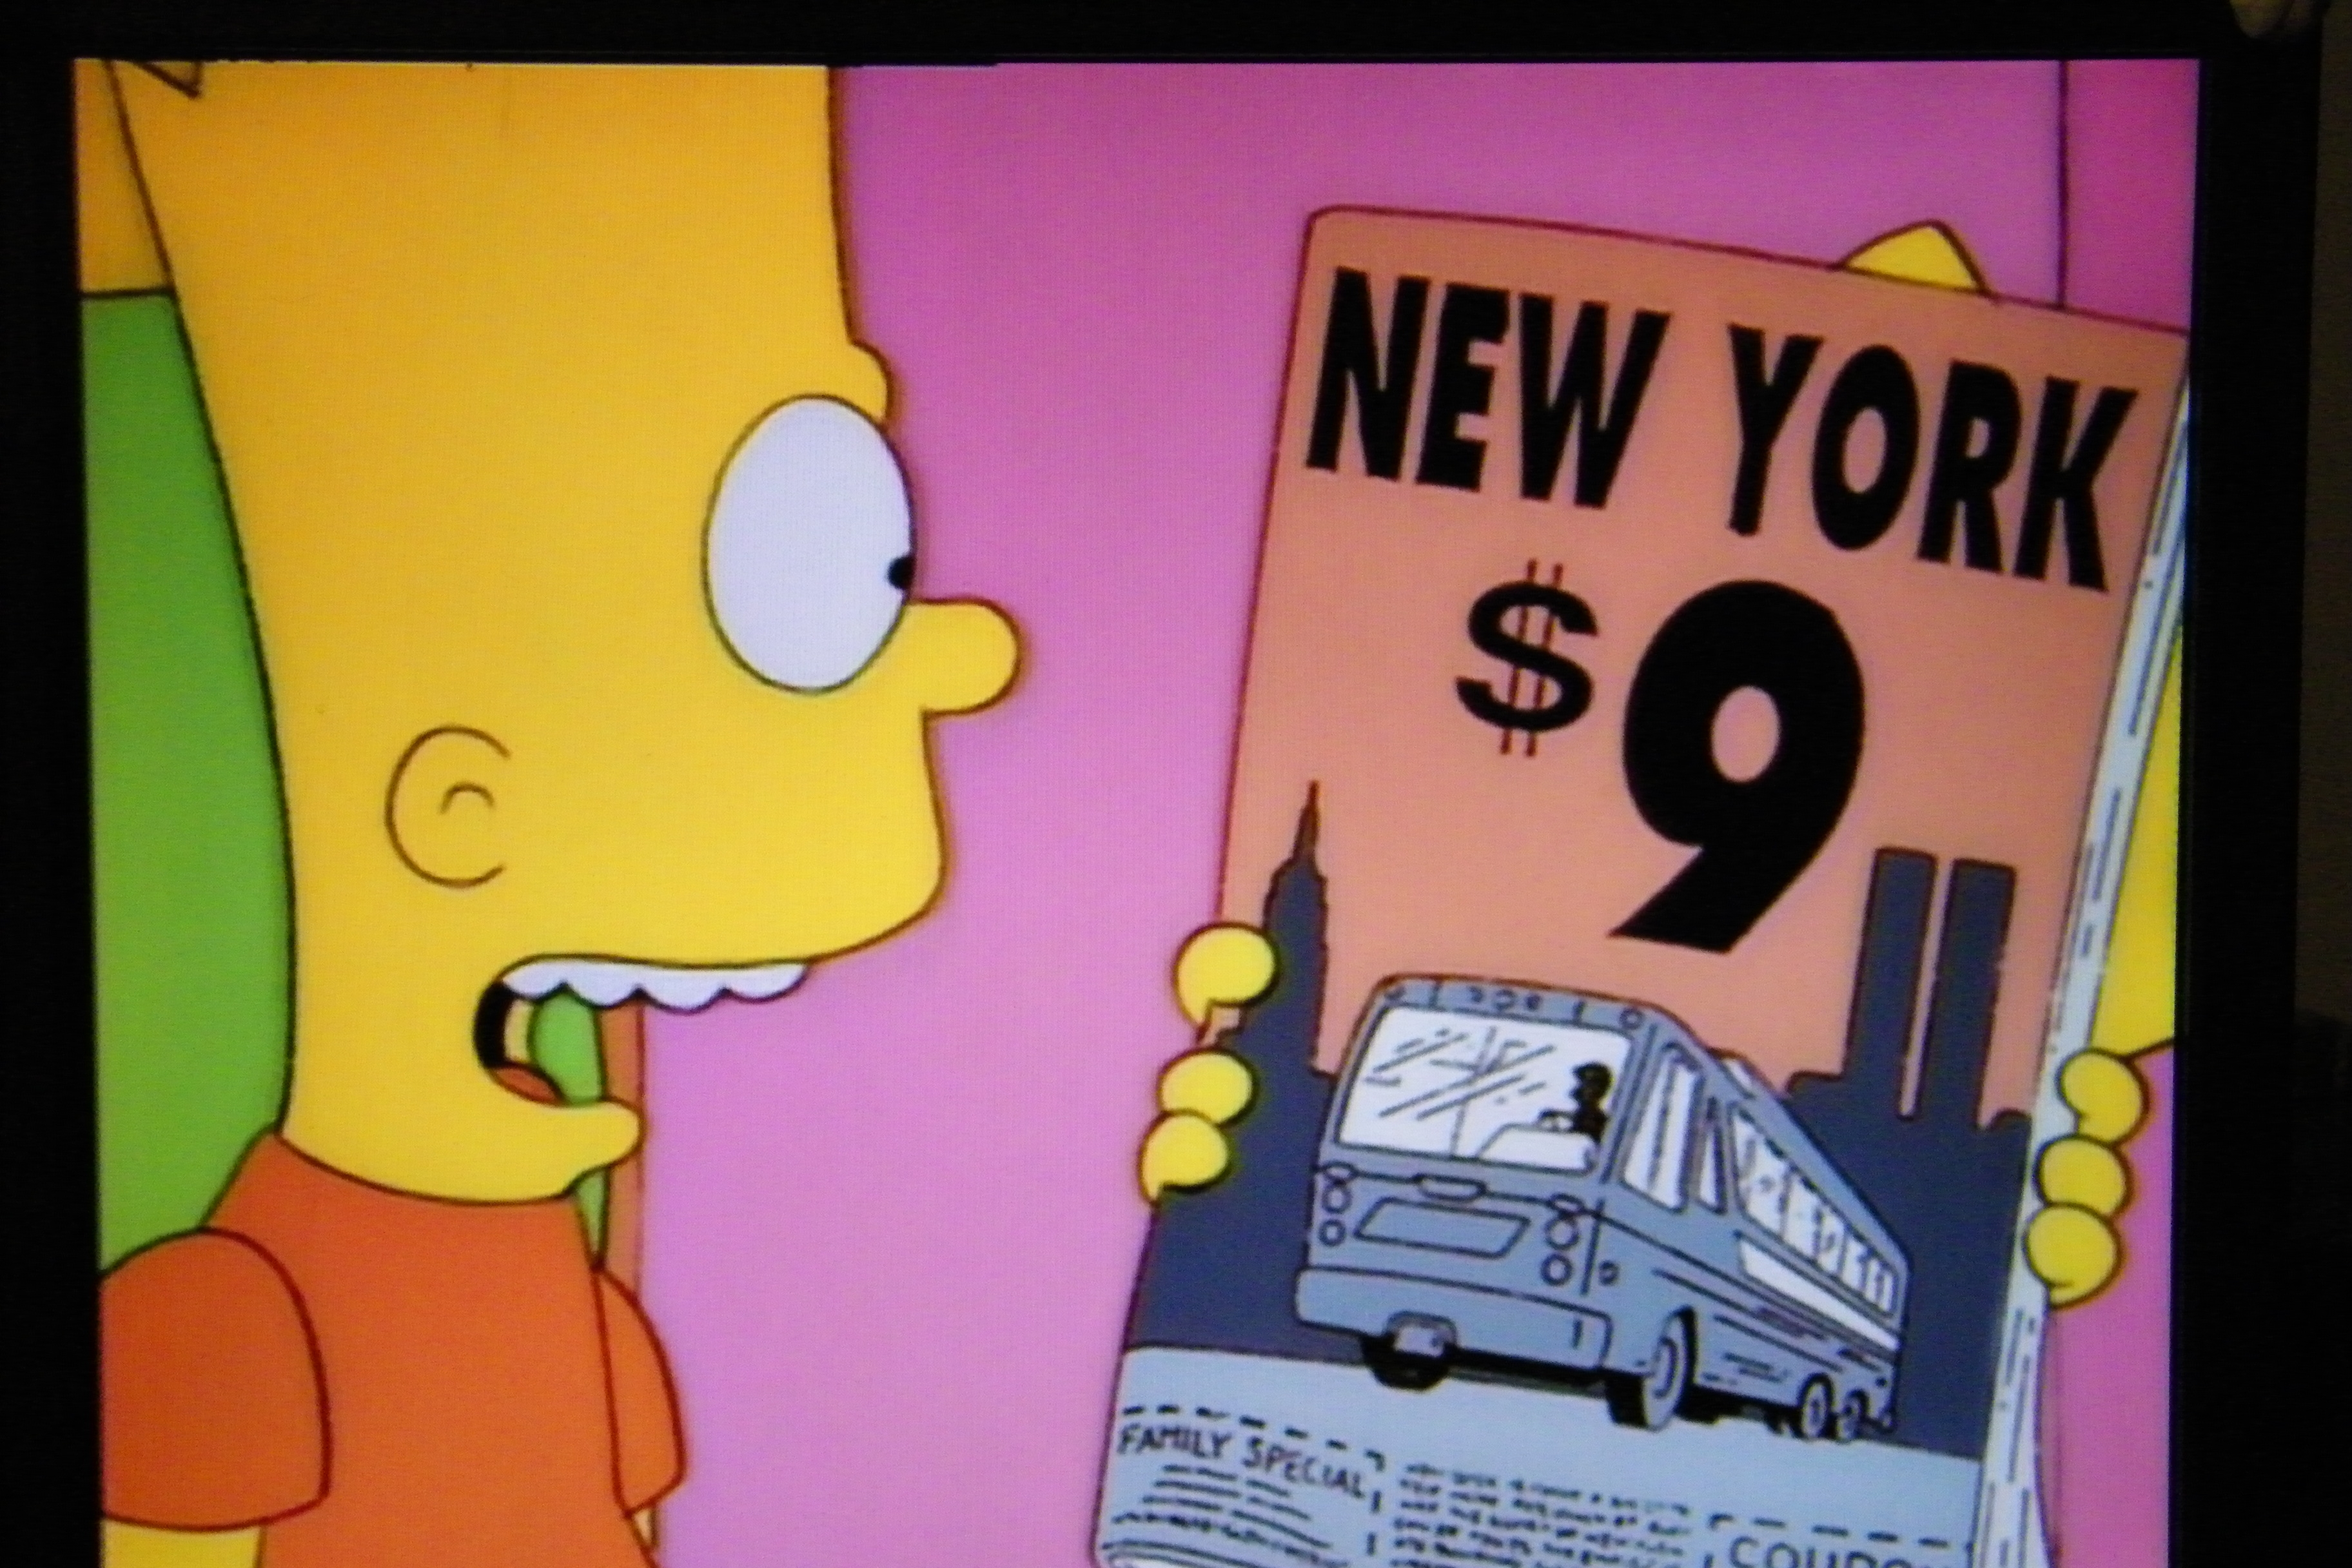 9 11 01 And 6 22 13 Terrorism Foretold In Simpsons Intellihub